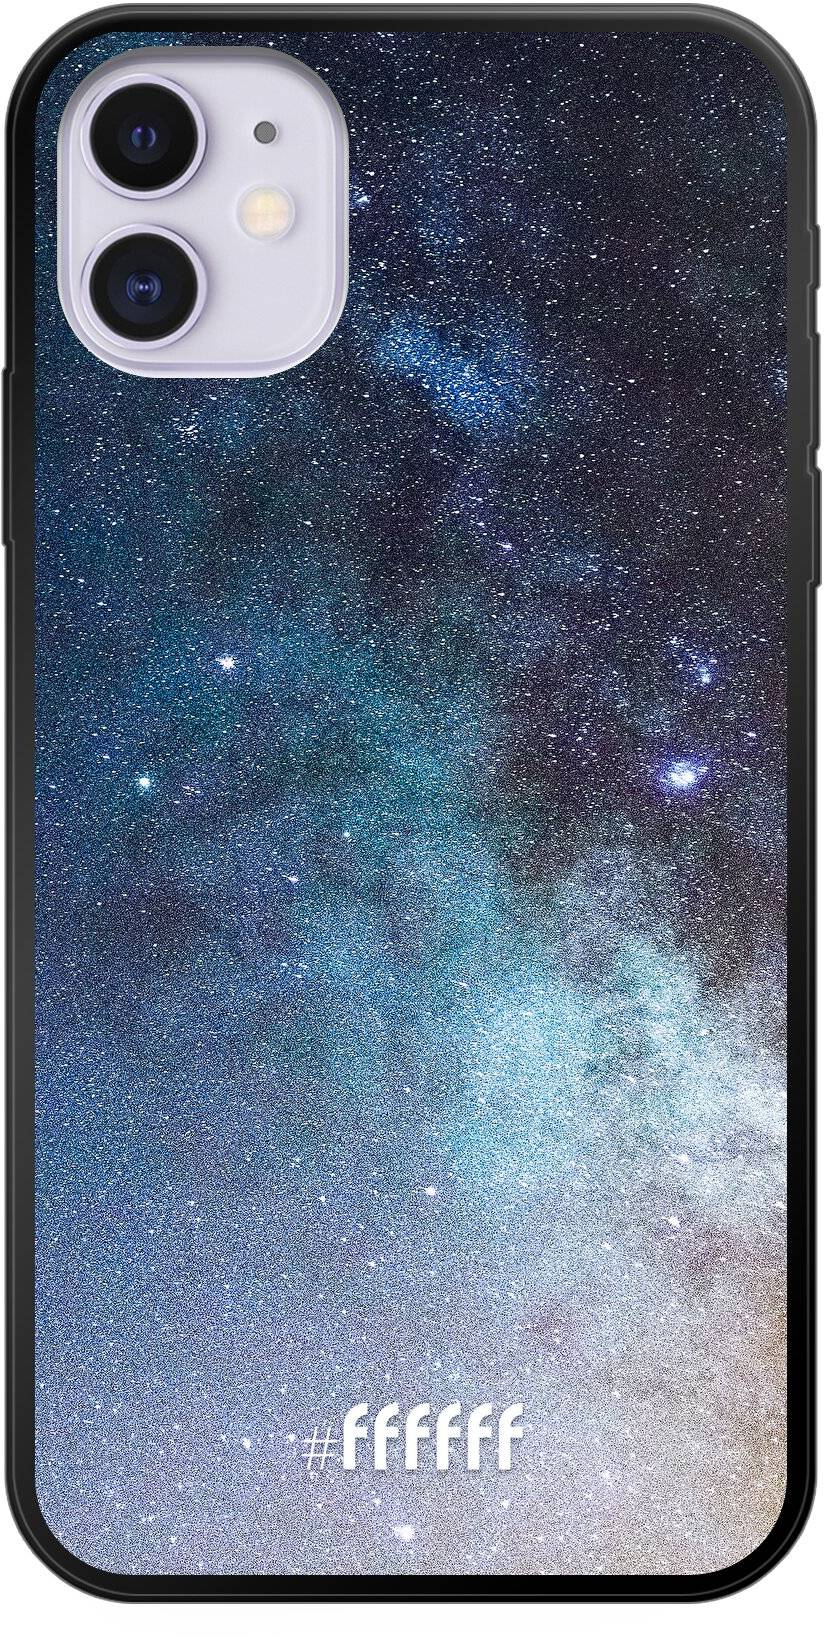 Milky Way iPhone 11